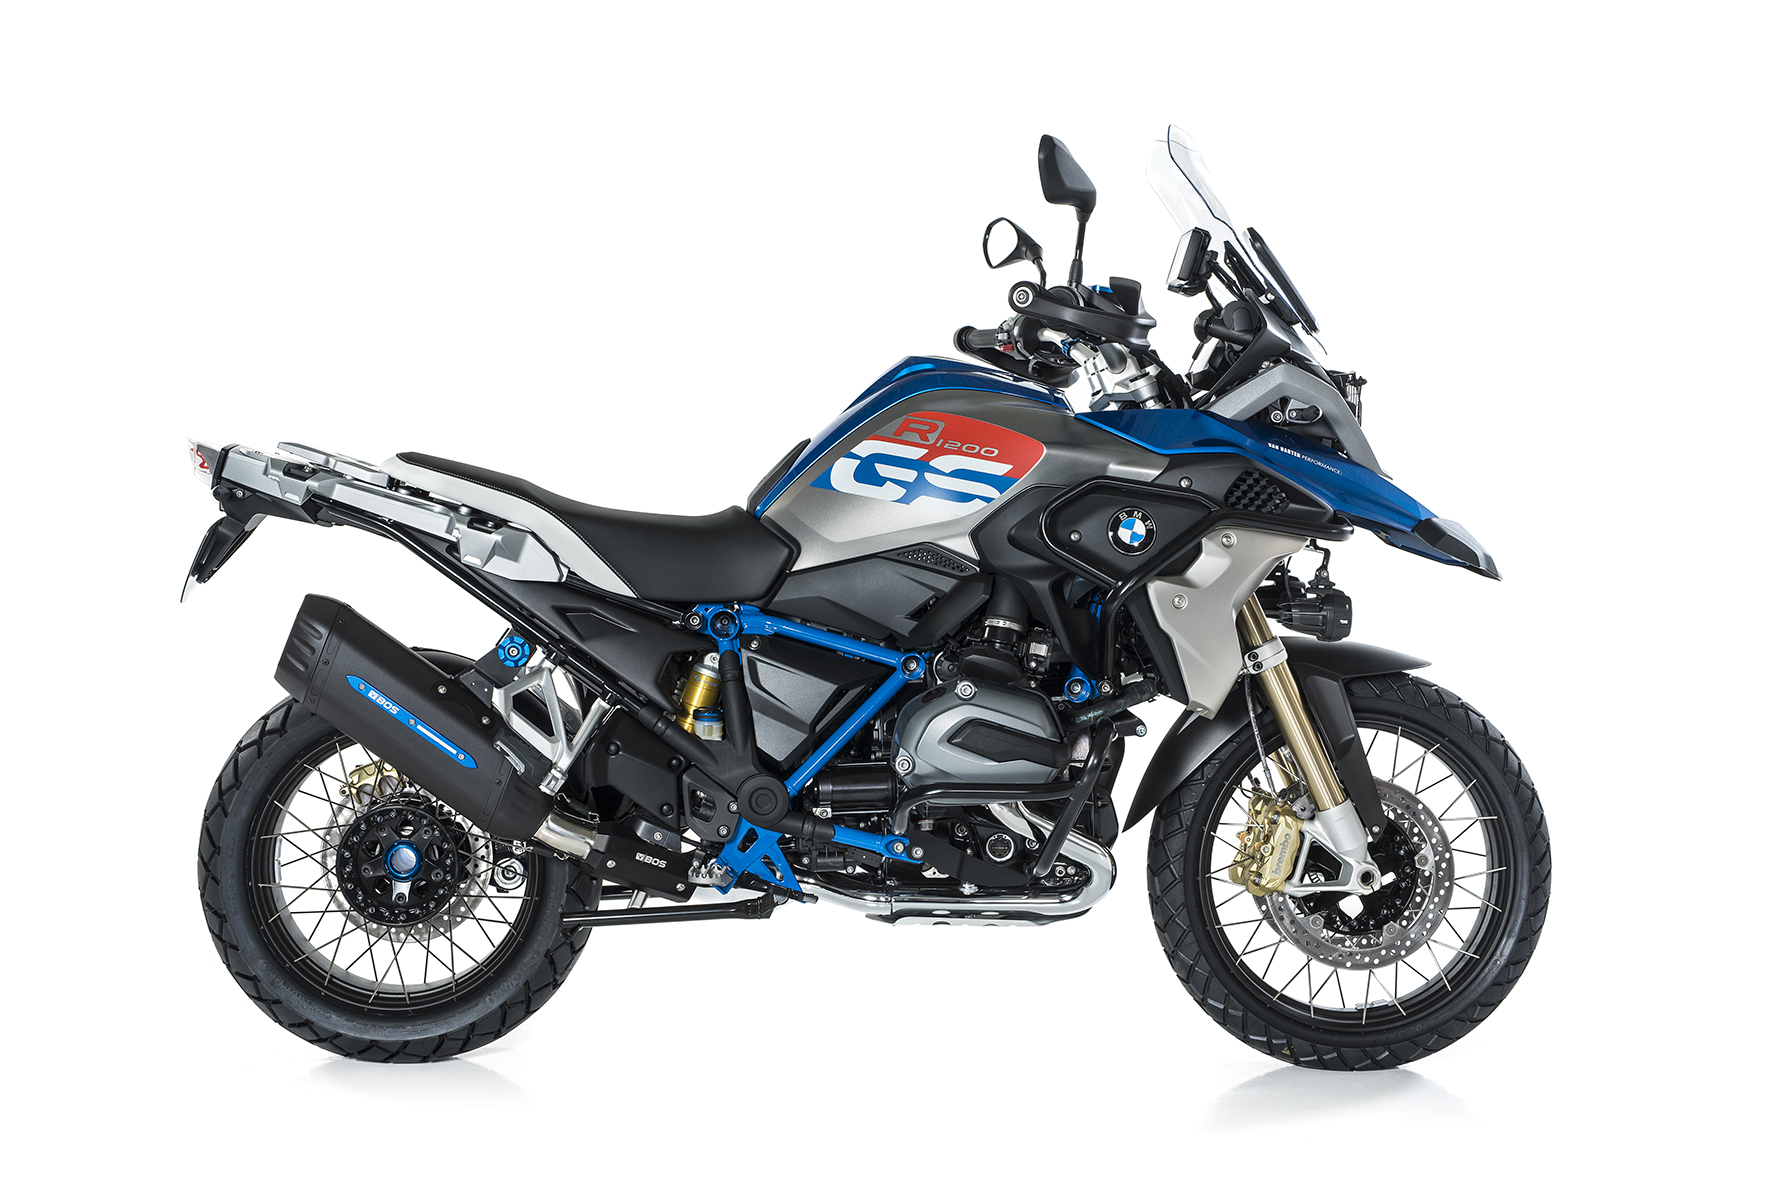 BMW R 1200 GS / Adventure ab 2017 BOS Desert Fox Rallye edition Slip-on